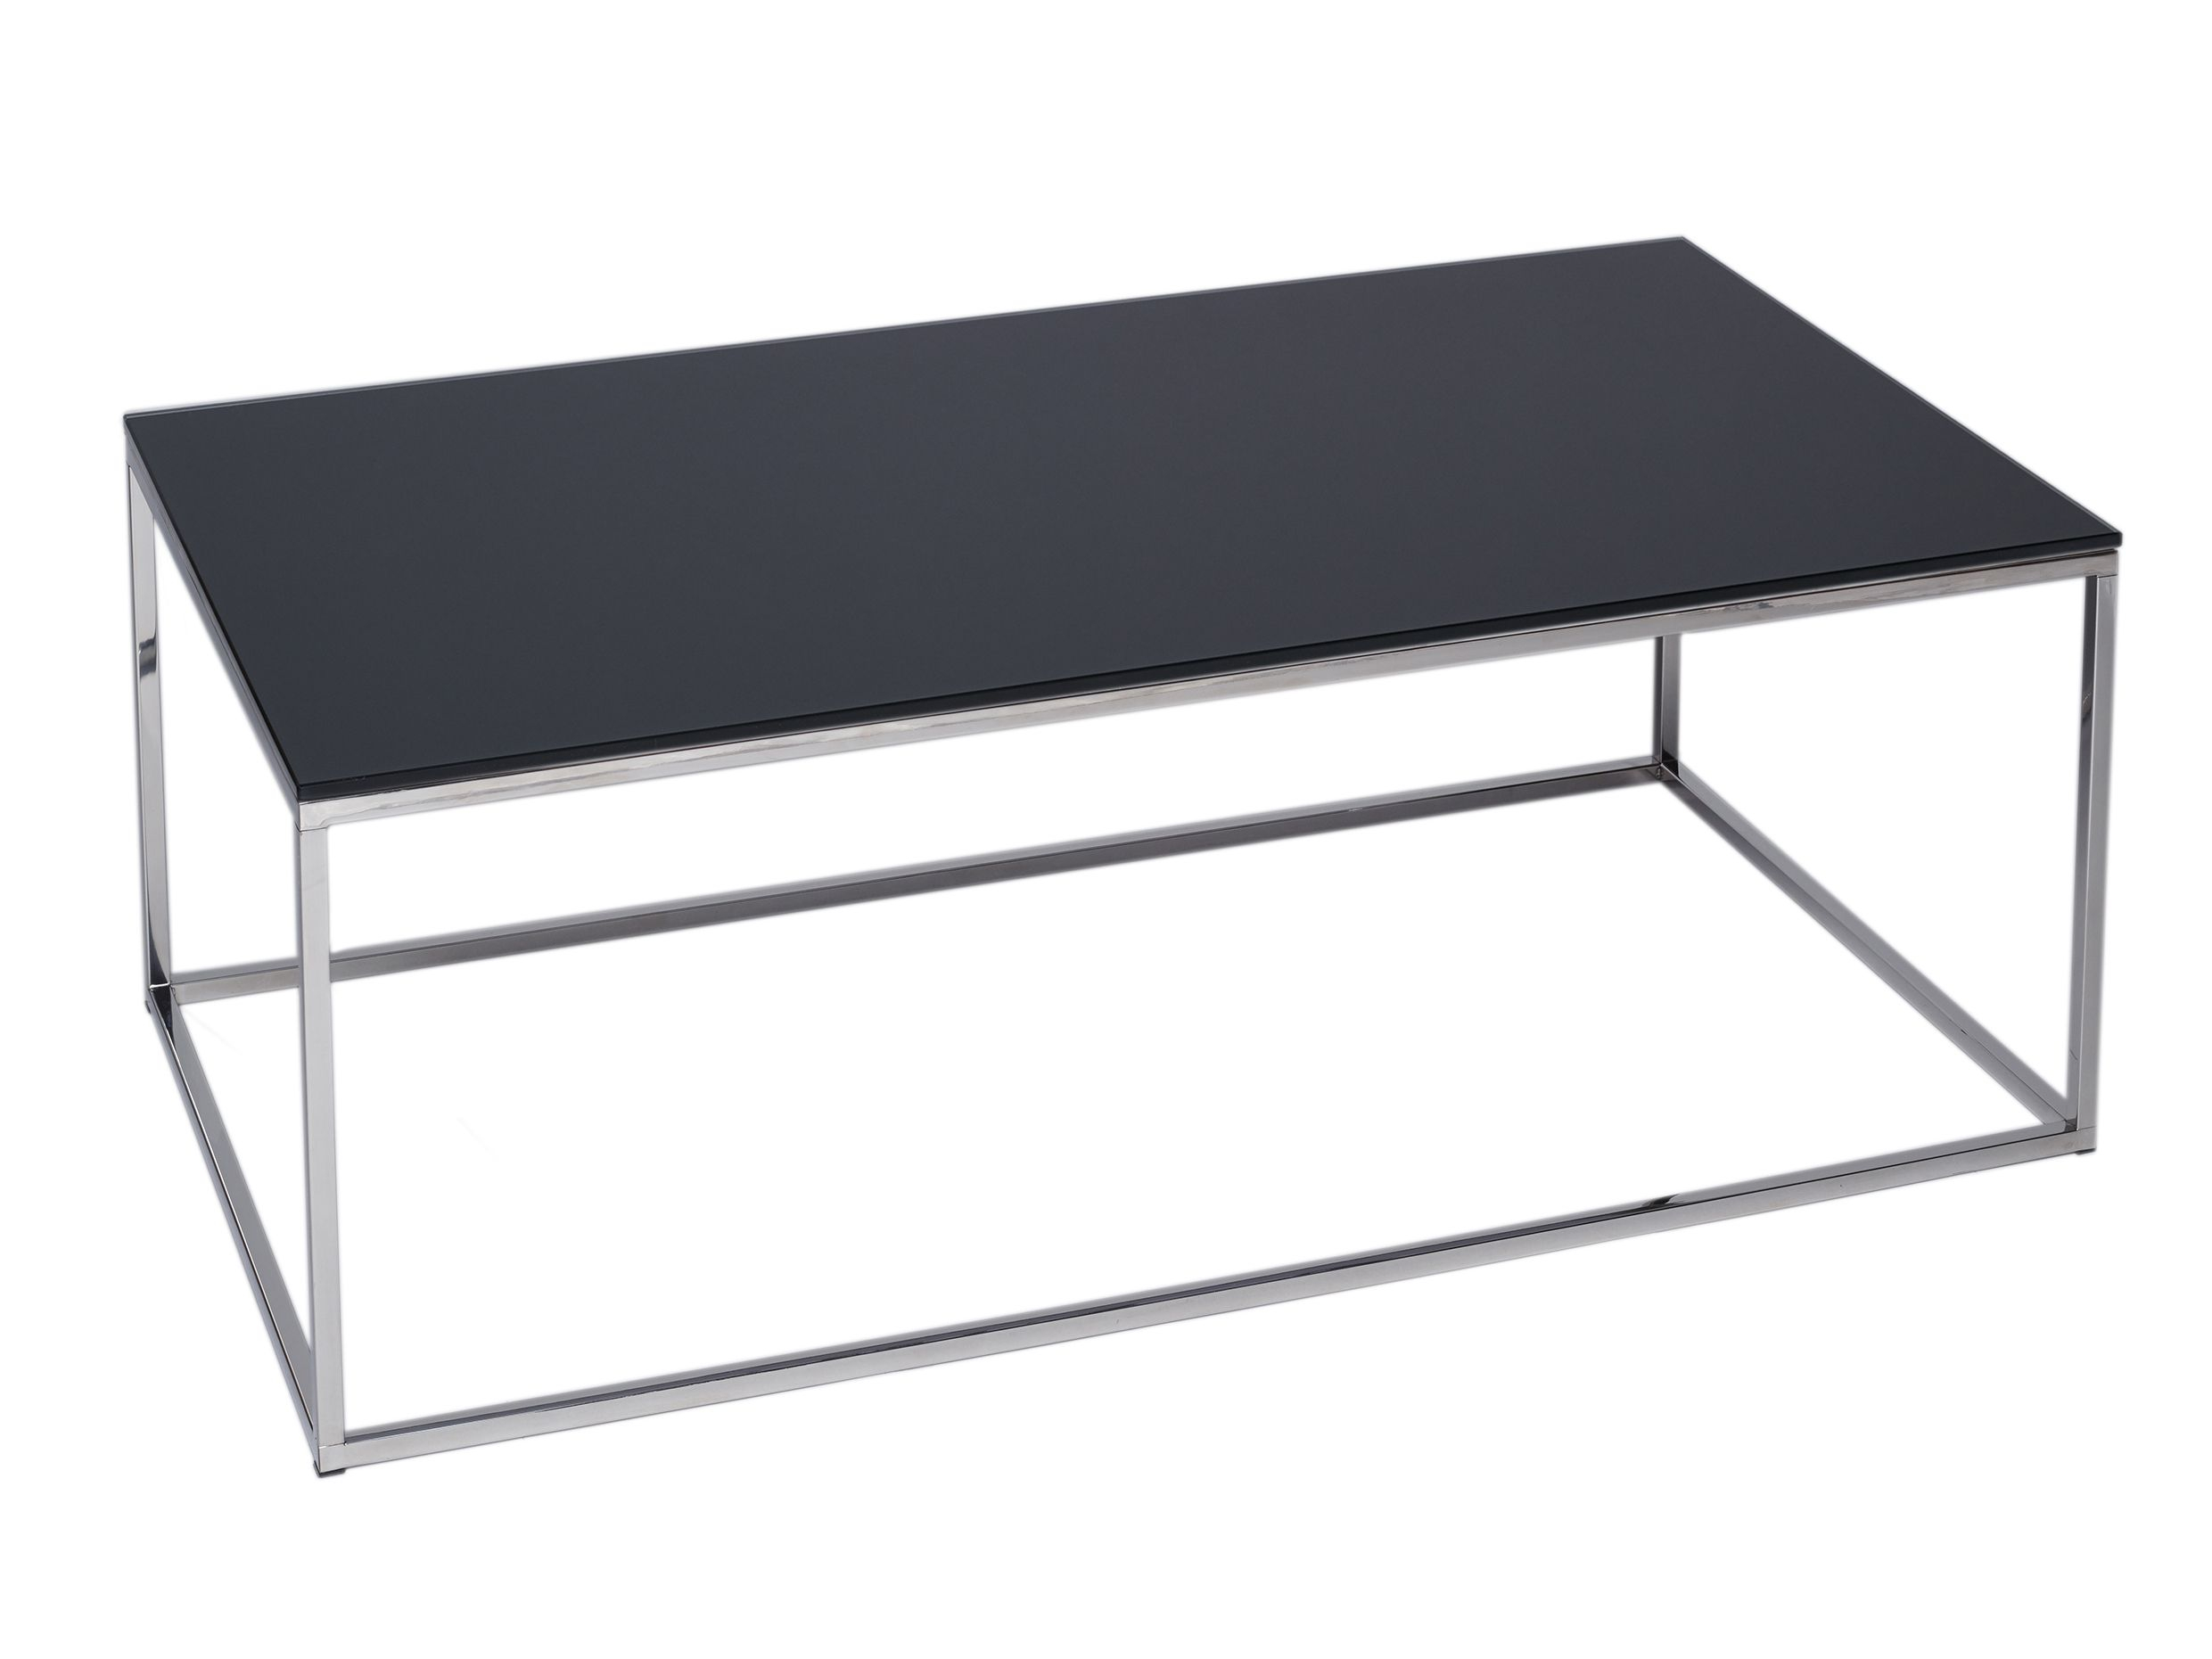 Rectangular Coffee Table Kensal Black With Polished Steel Base intended for proportions 2481 X 1861